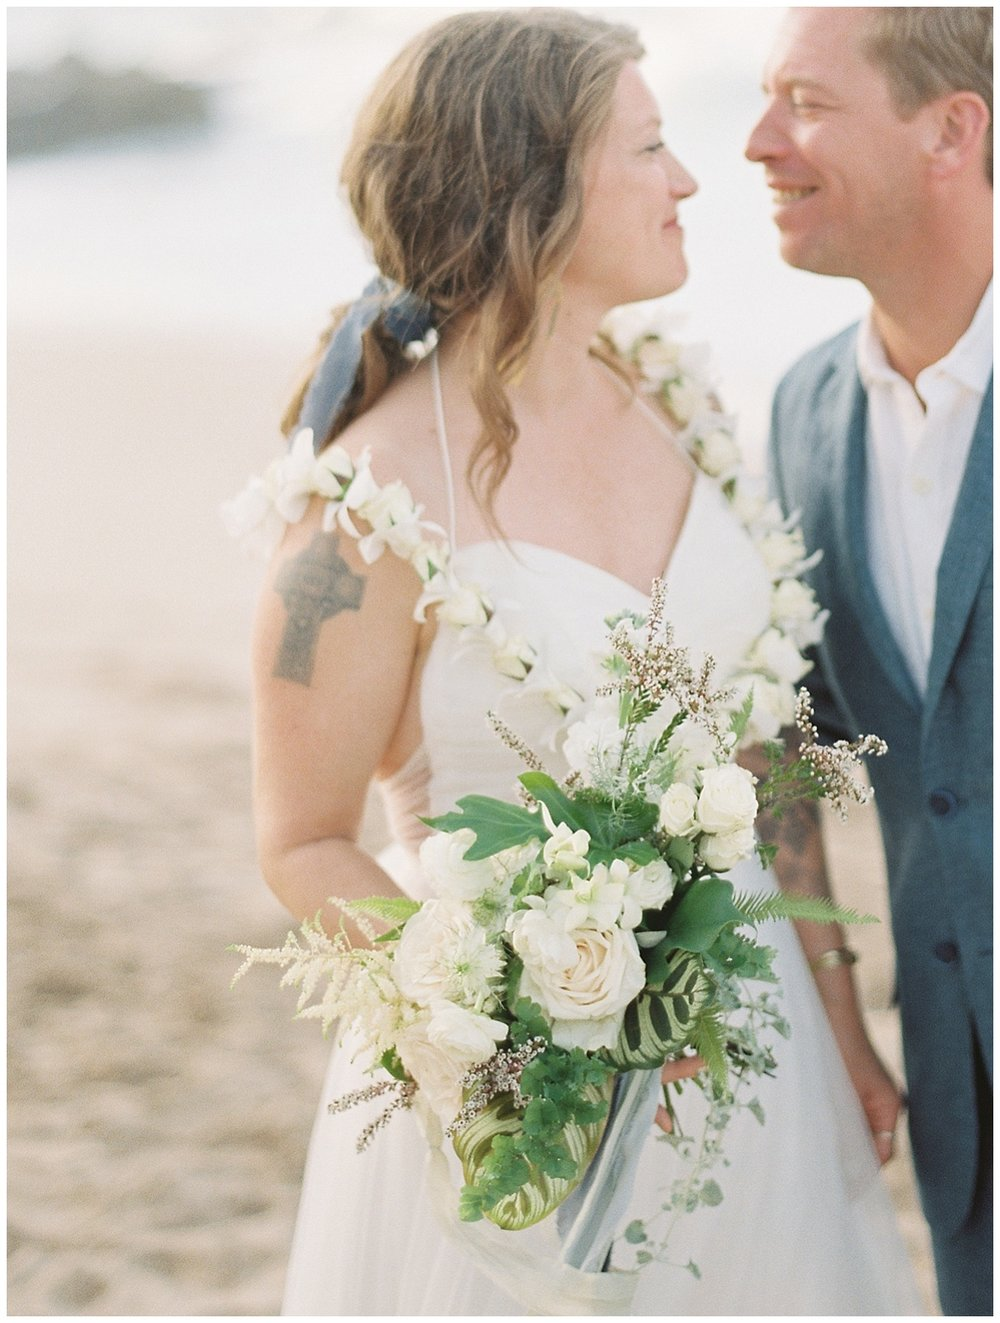 beach-elopement-bride-groom-looking-and-smiling-at-each-other.jpg